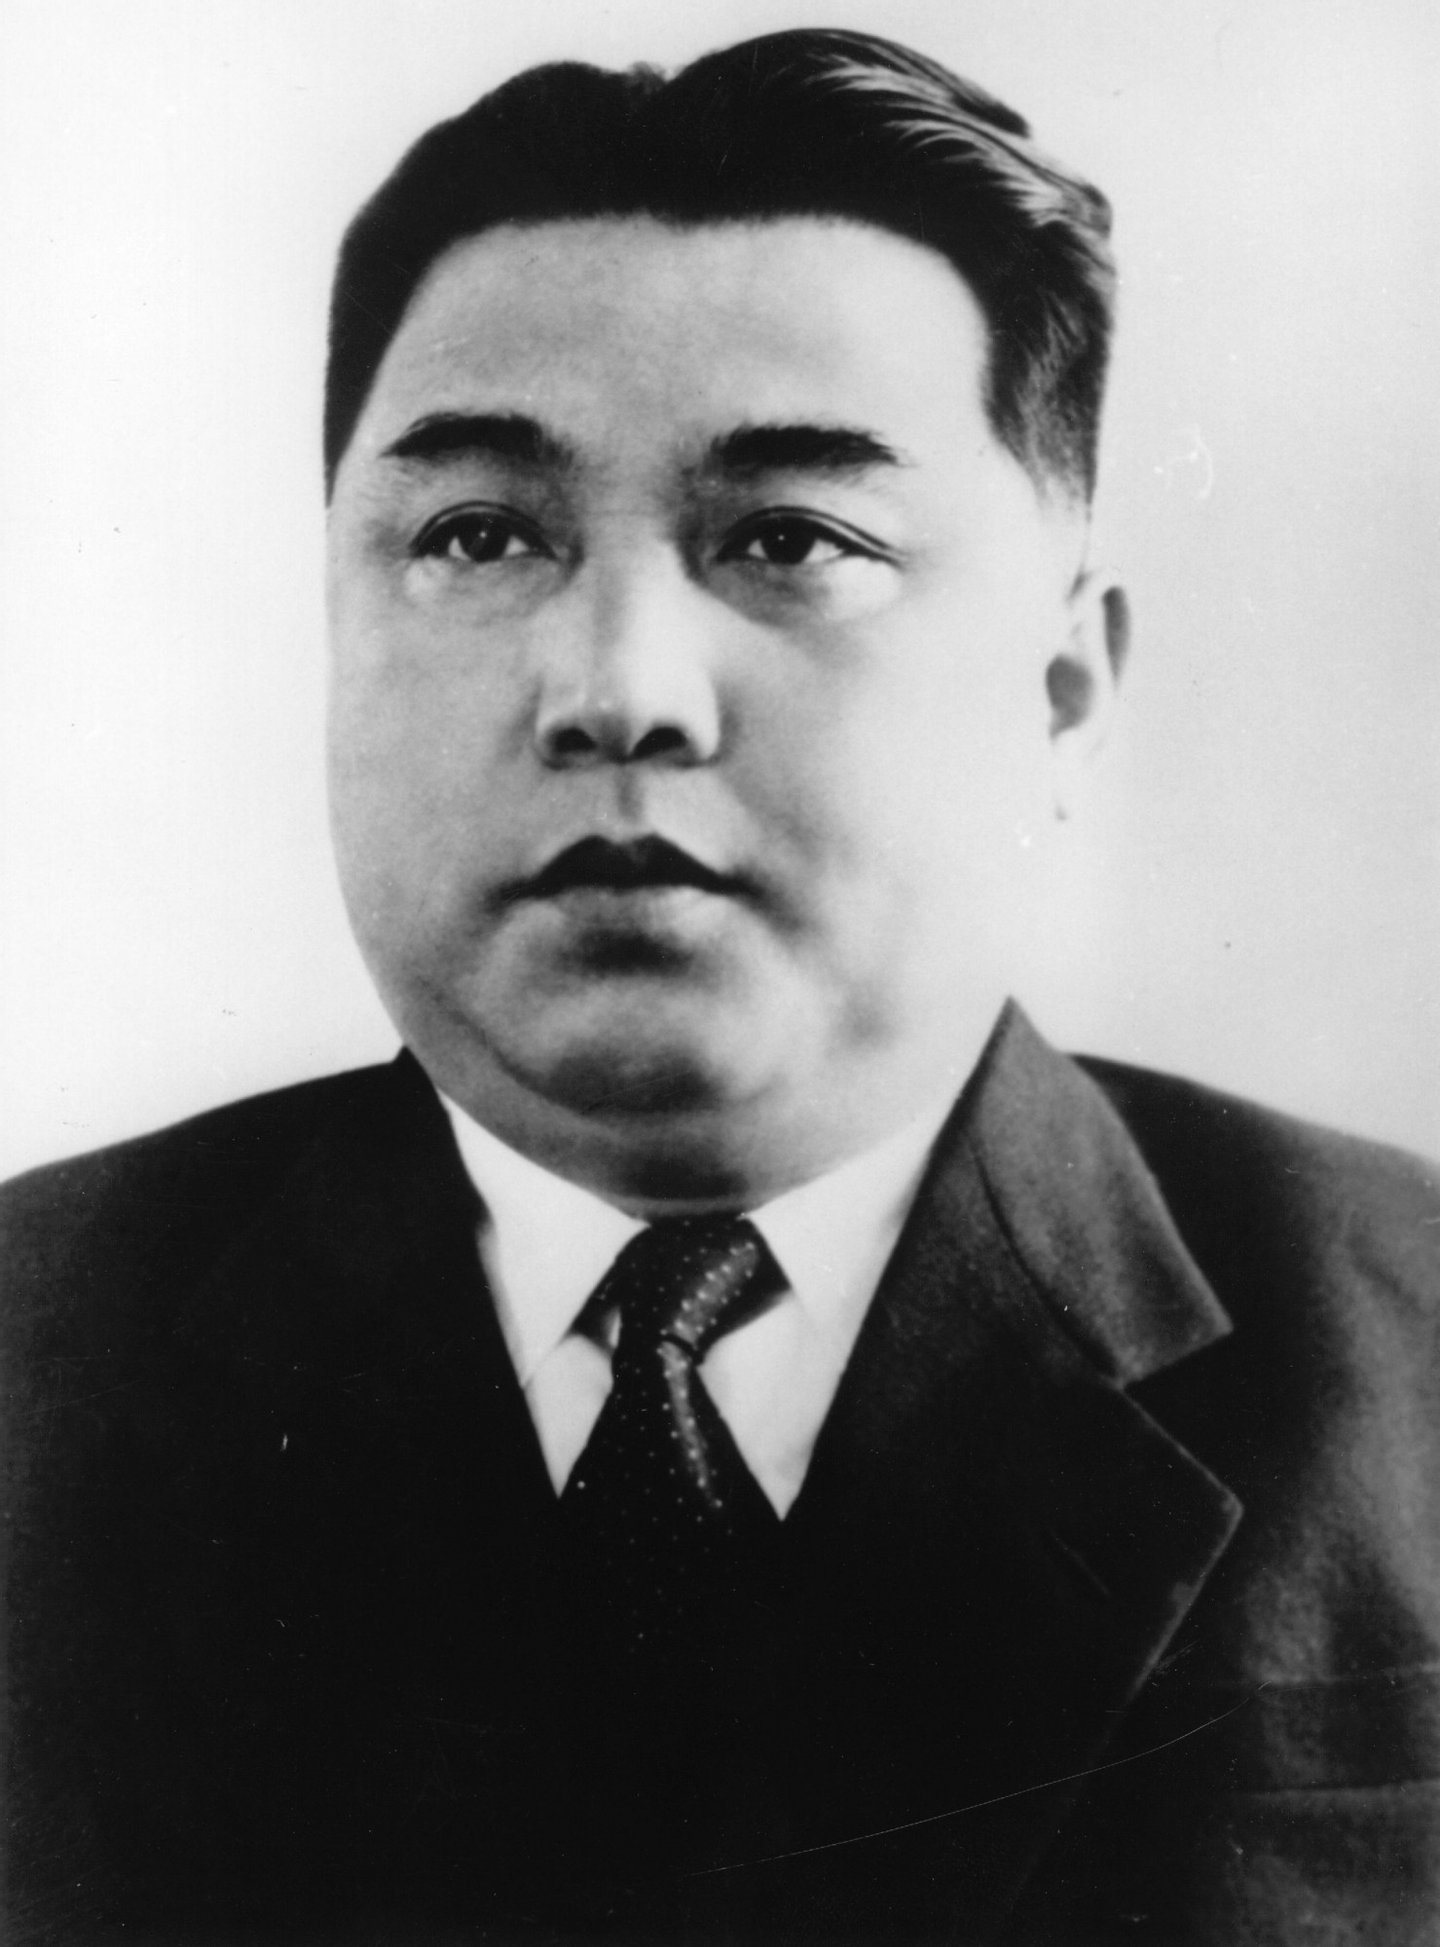 circa 1950: Kim Il Sung, Prime Minister of the Korean People's Democratic Republic and Secretary General of the Korean Workers Party. (Photo by Three Lions/Getty Images)